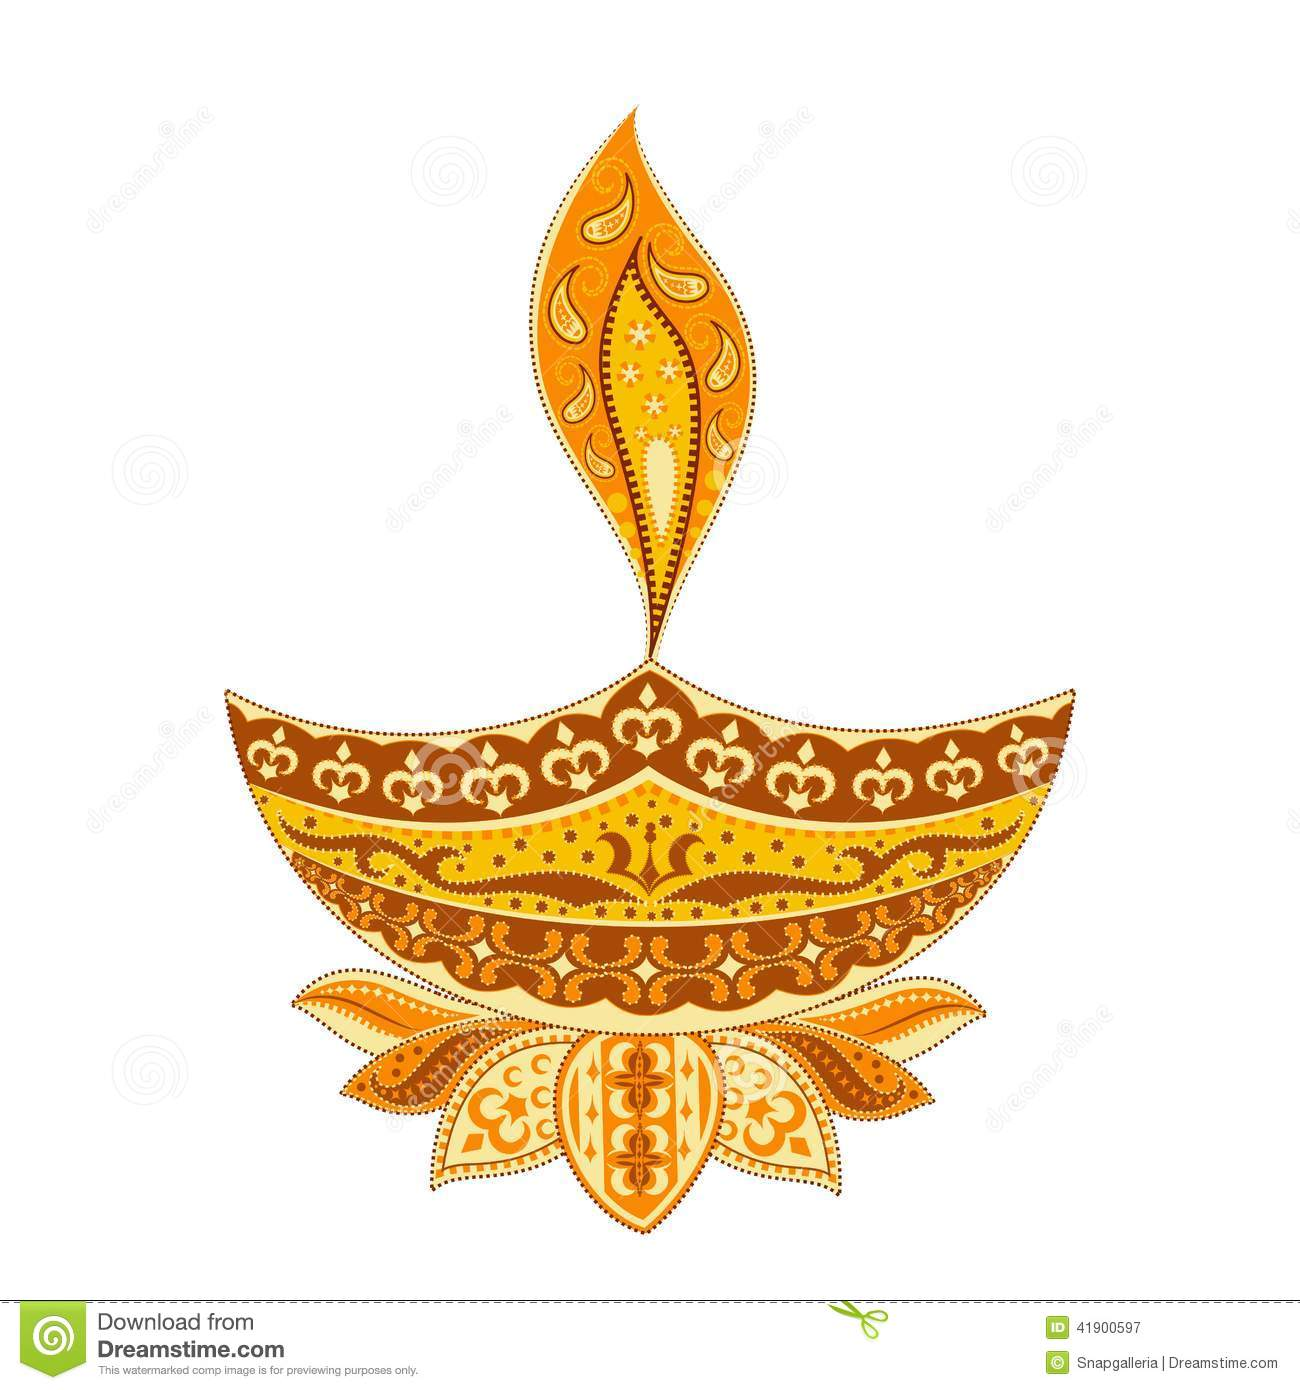 Diwali Diya stock vector. Illustration of diya, hinduism - 41900597 for Diwali Lamp Designs  197uhy